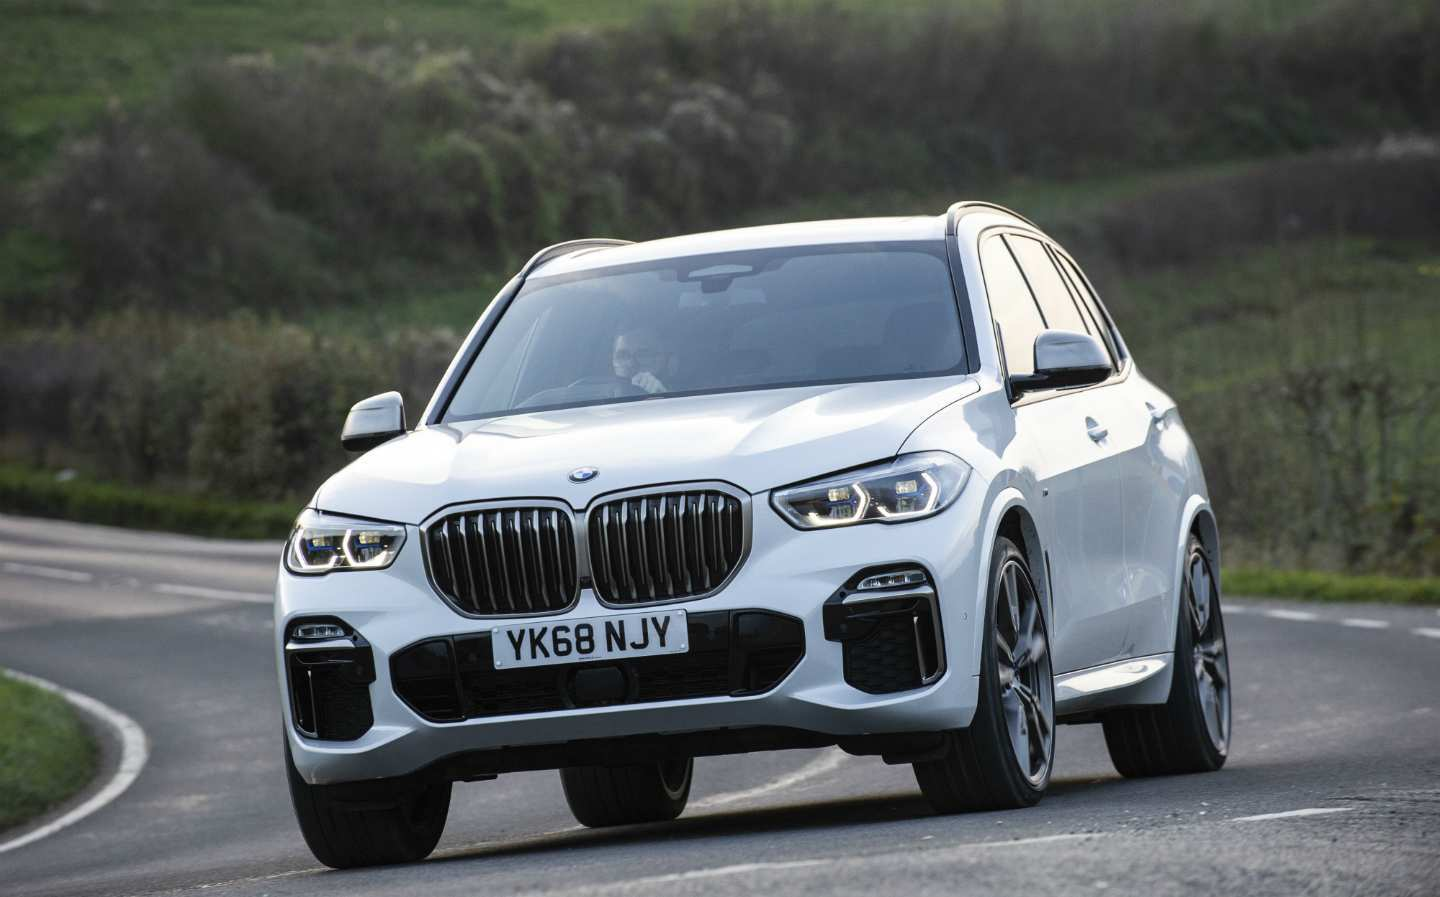 84 Best Review Bmw 2019 X5 Release Date Performance Picture for Bmw 2019 X5 Release Date Performance